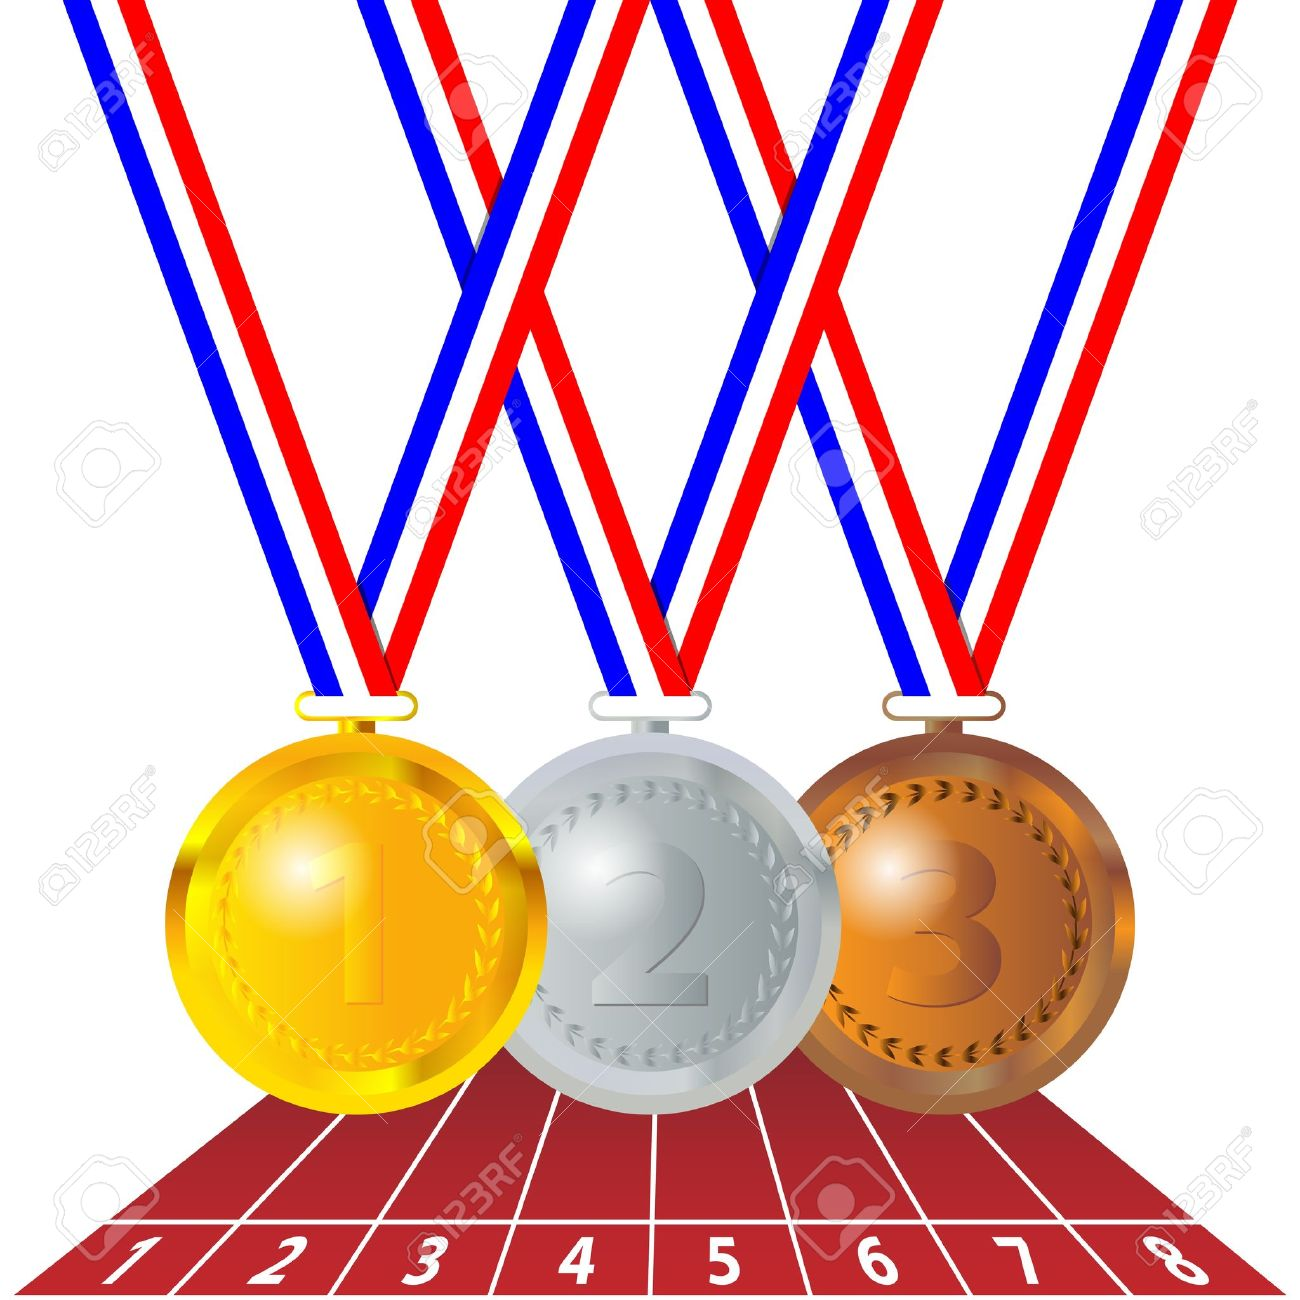 clip art medals free - photo #2